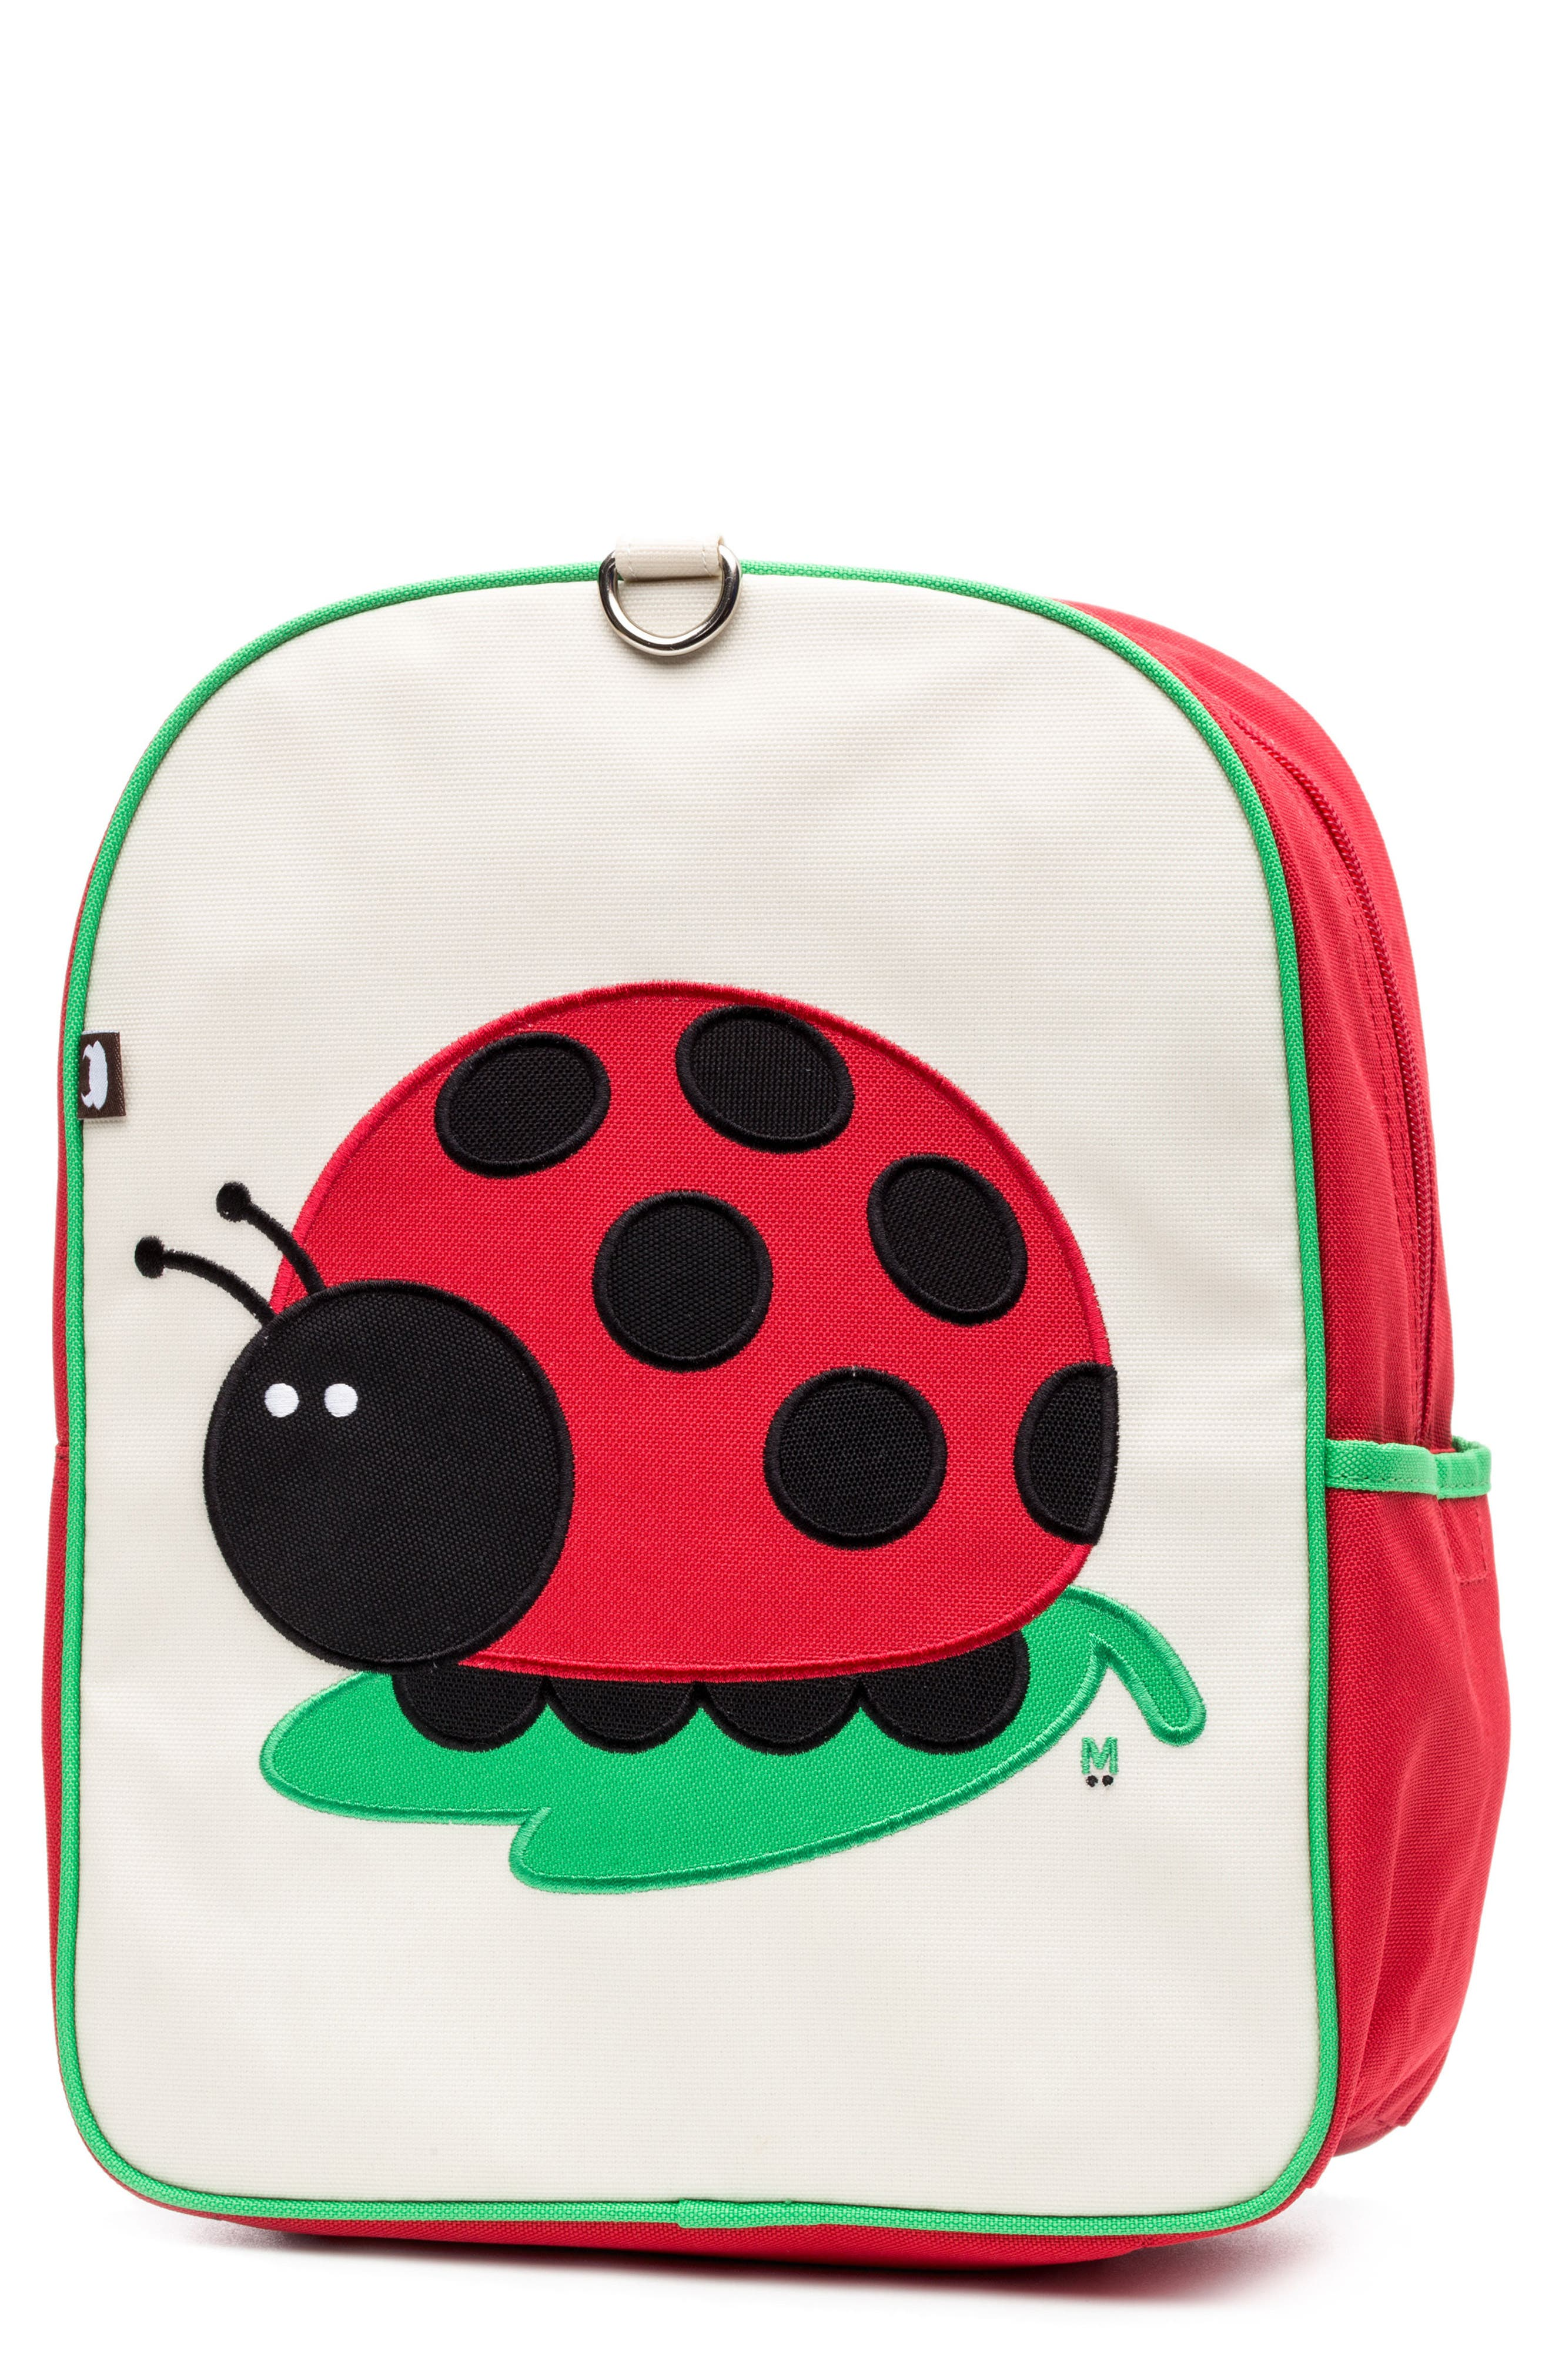 Little Kid Backpack,                             Main thumbnail 1, color,                             JUJU THE LADYBUG